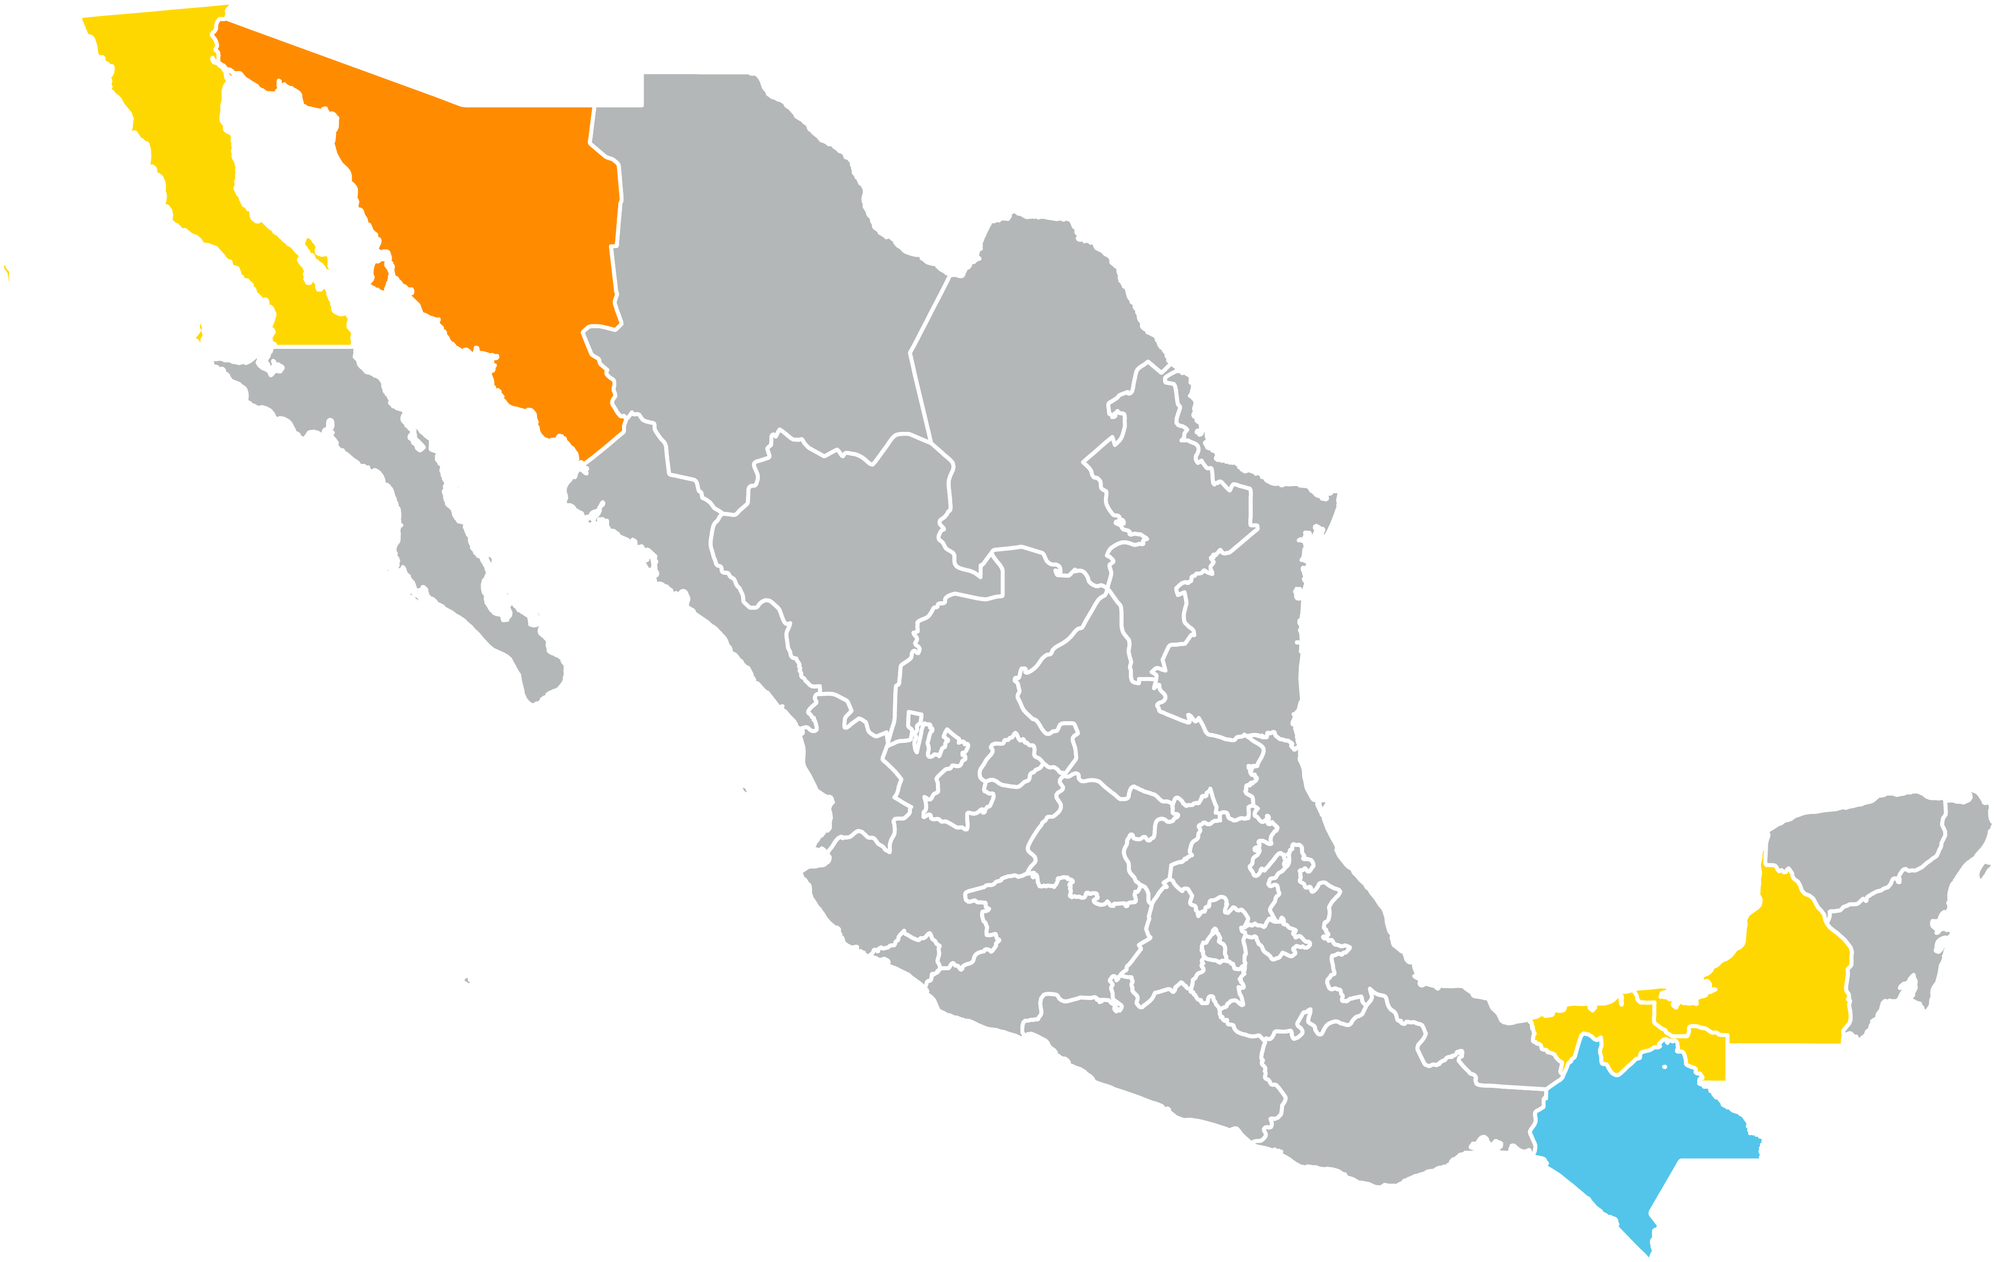 map of states of Mexico with Sonora, Campeche, Baja California, and Chiapas in color